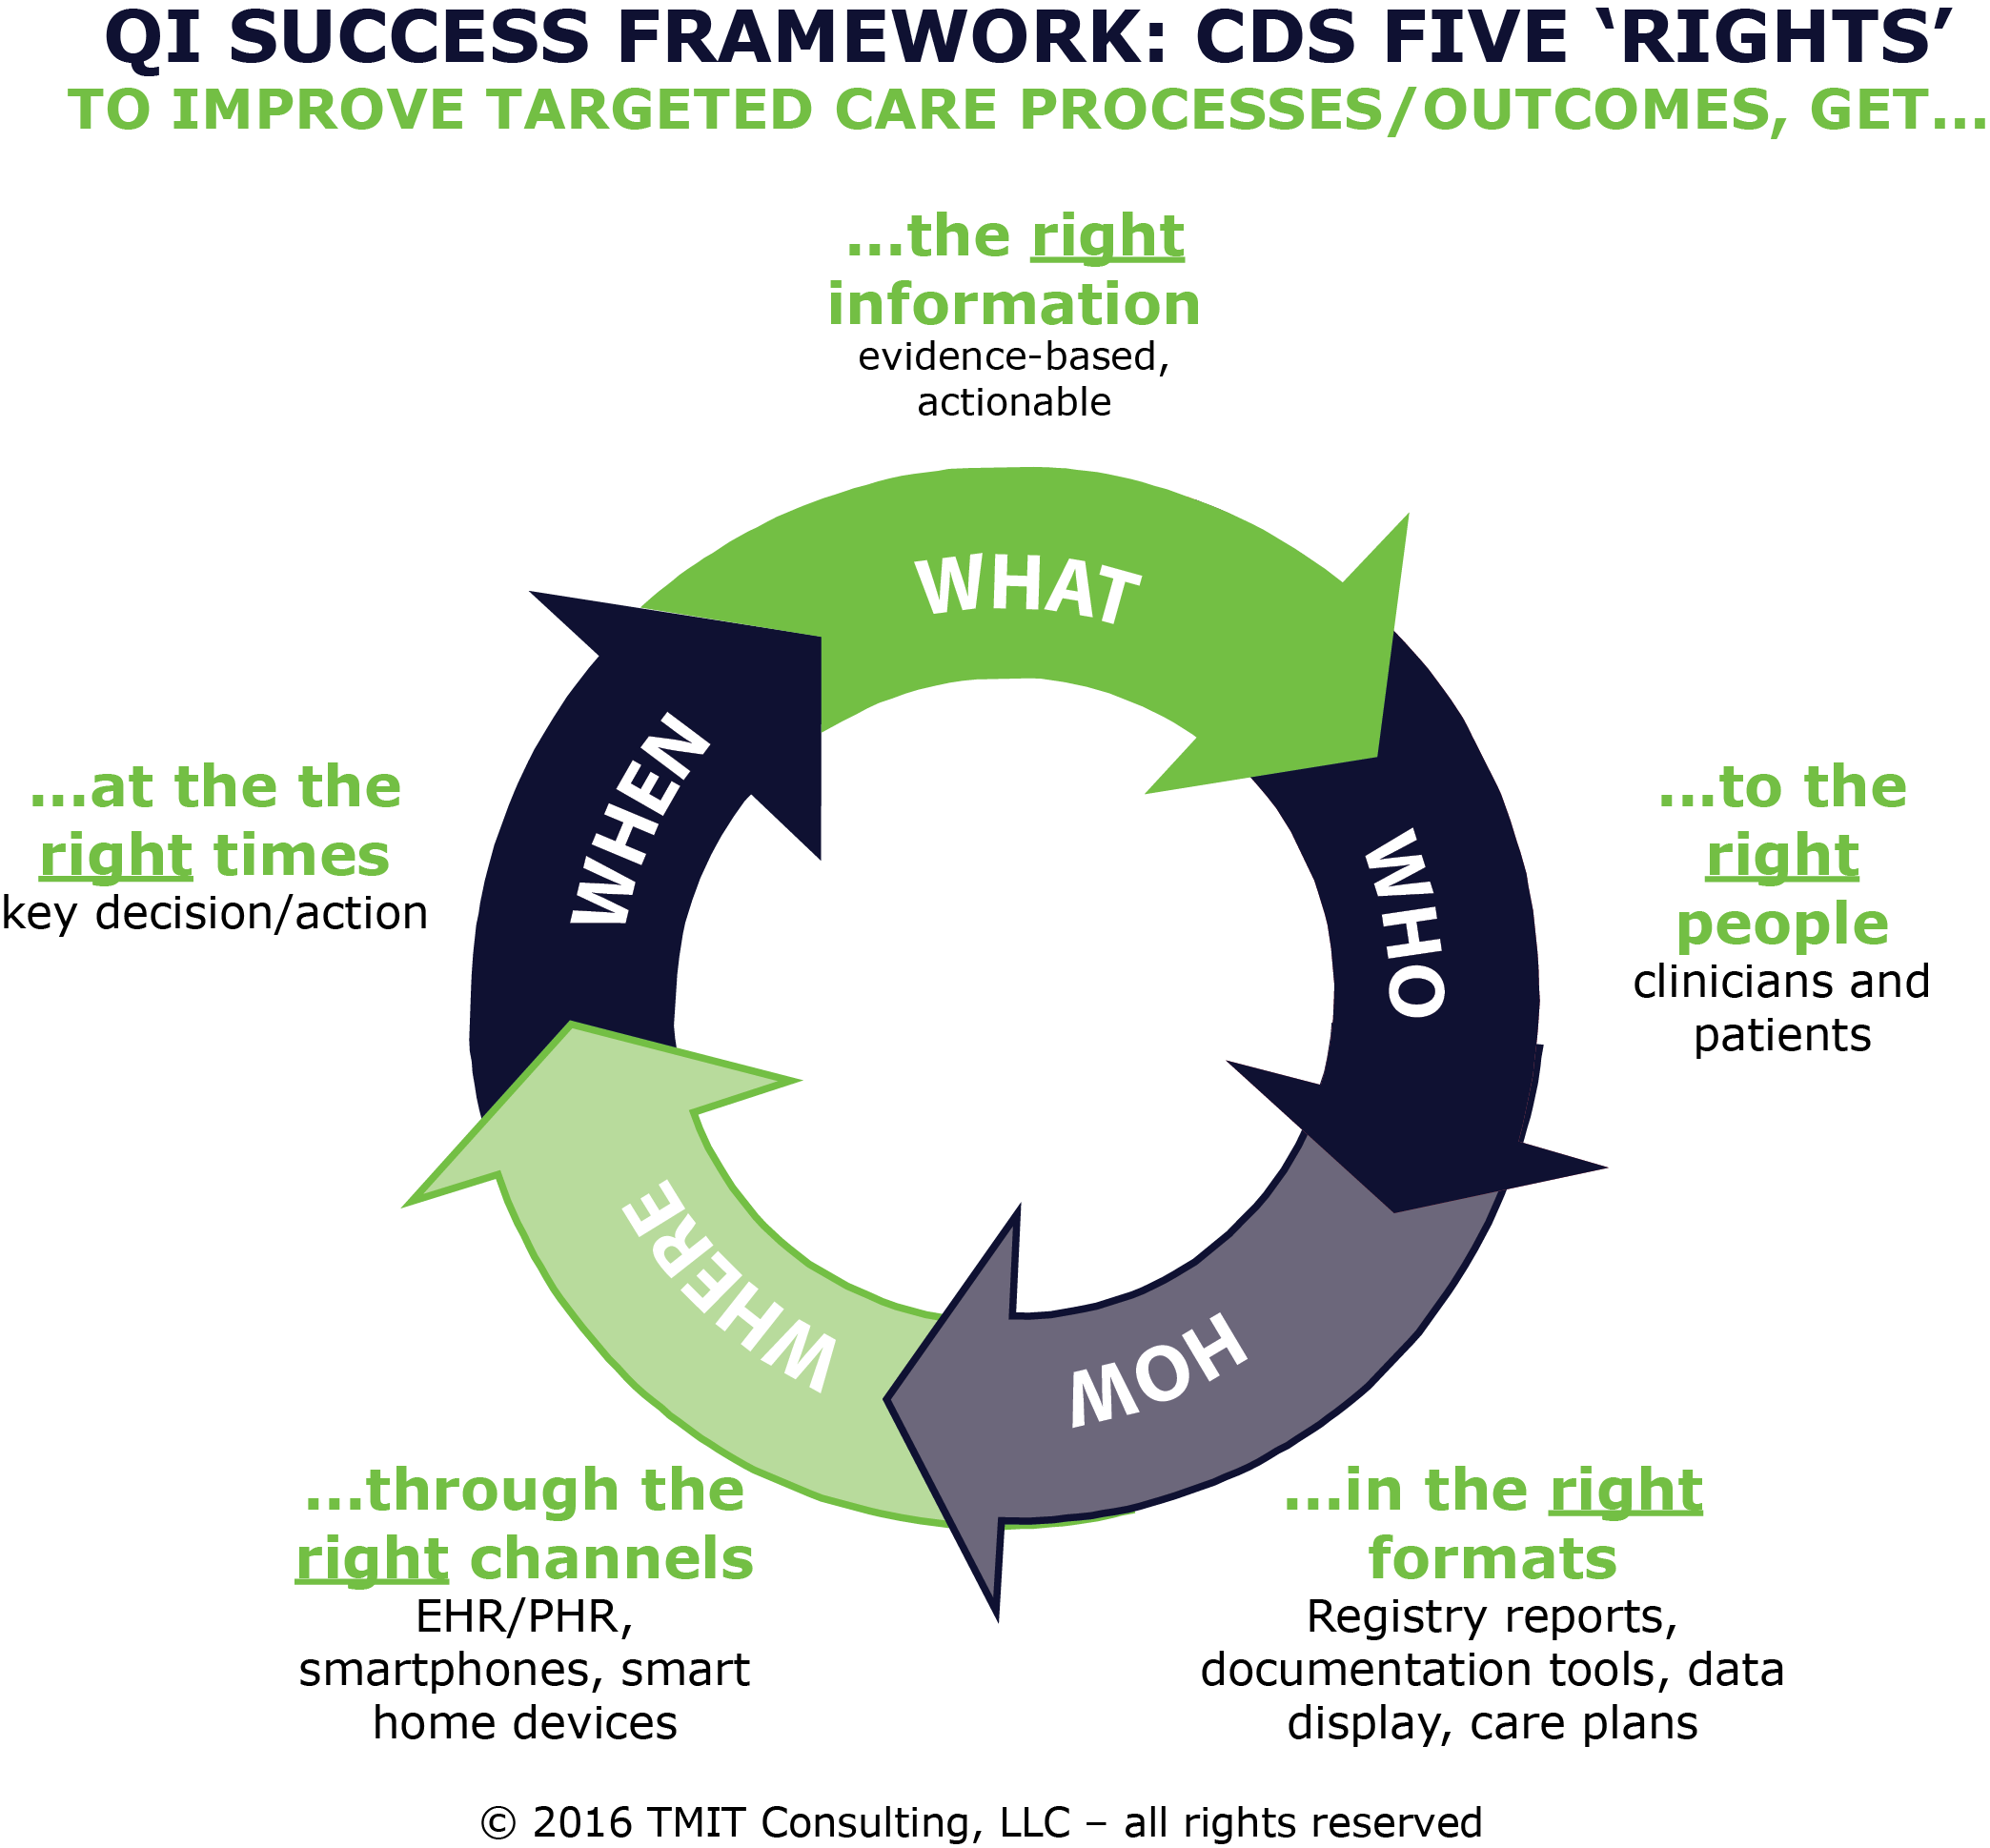 QI Success Framework: CDS Five Rights